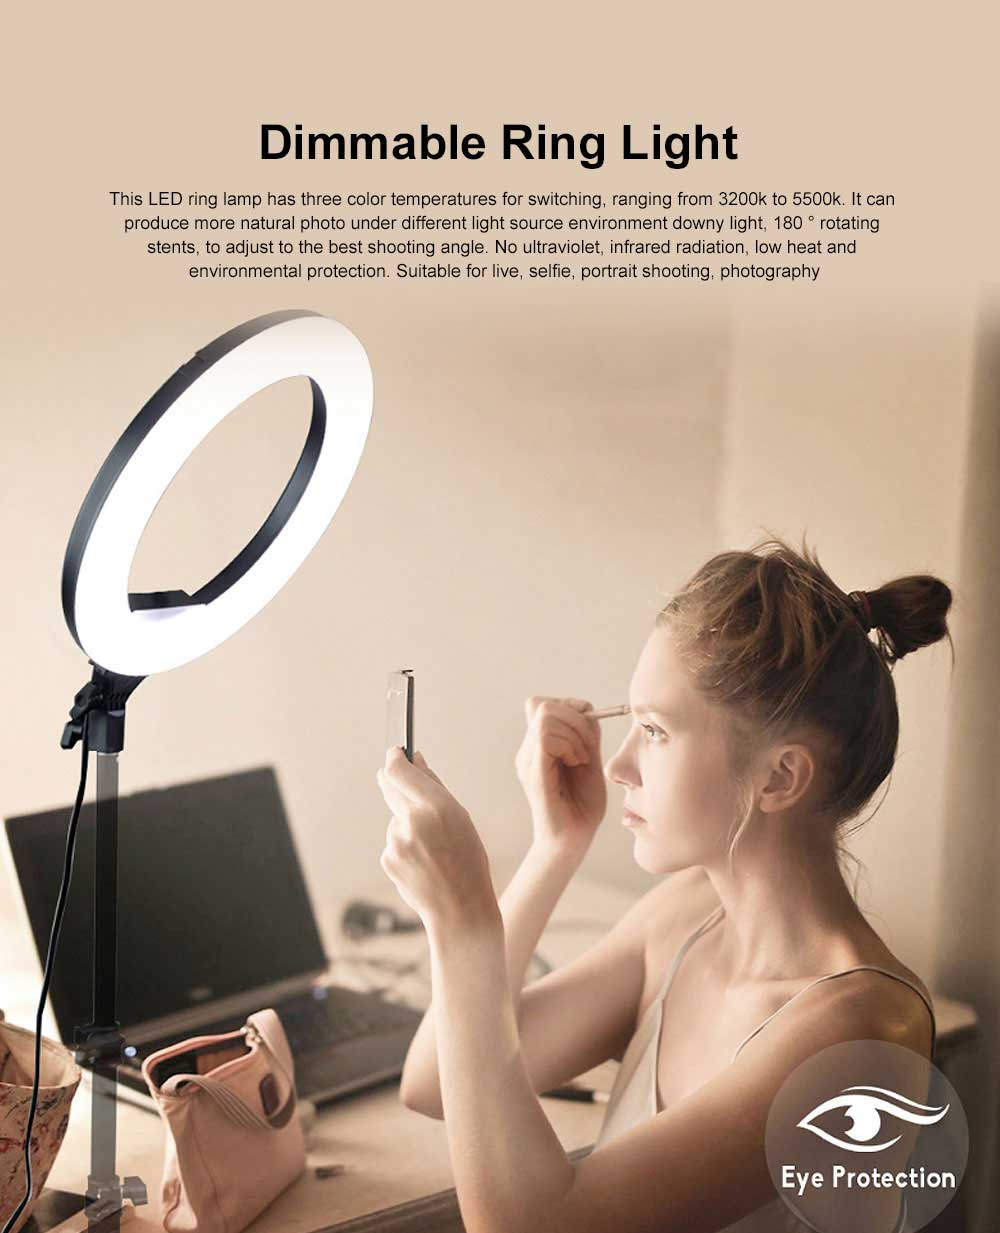 Selfie Desktop Ring Light, Dimmable Ring Light for YouTube Live Streaming, Portrait Photography LED Round Fill Light 12 inches 0